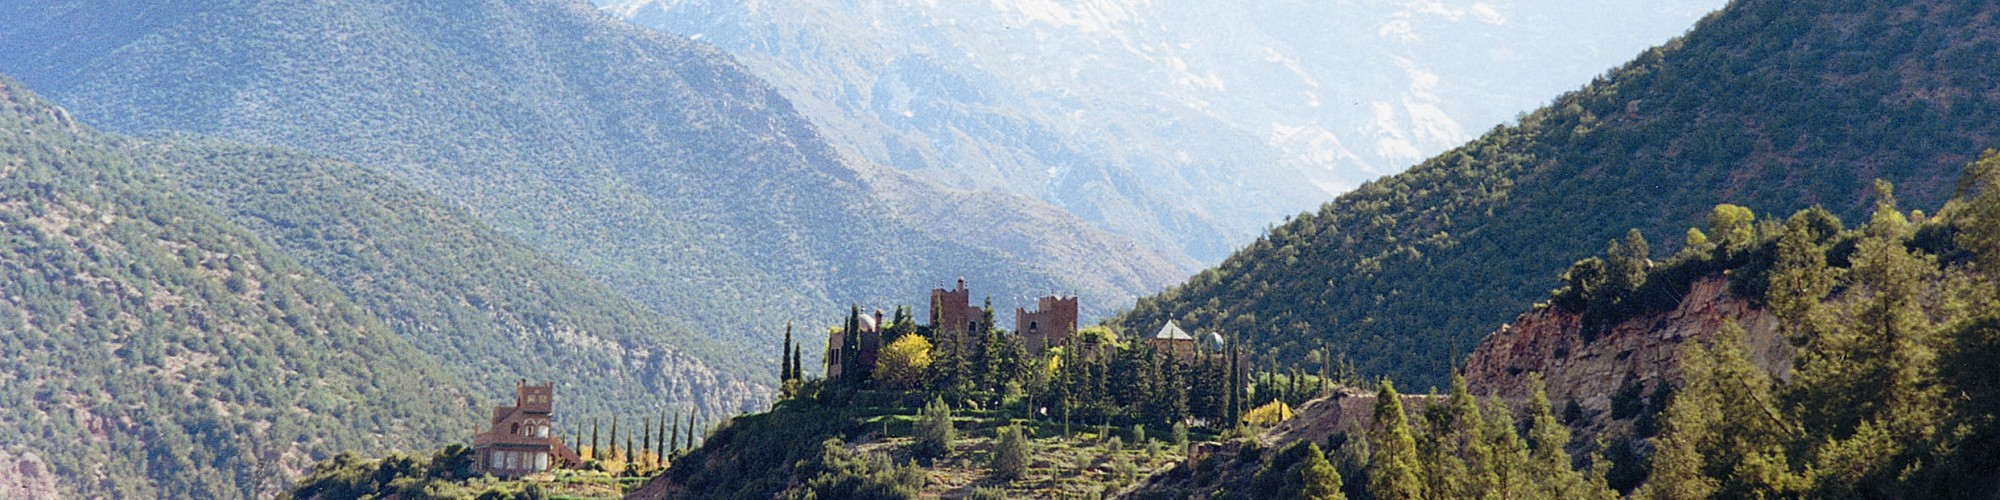 Morocco - Atlas Mountains